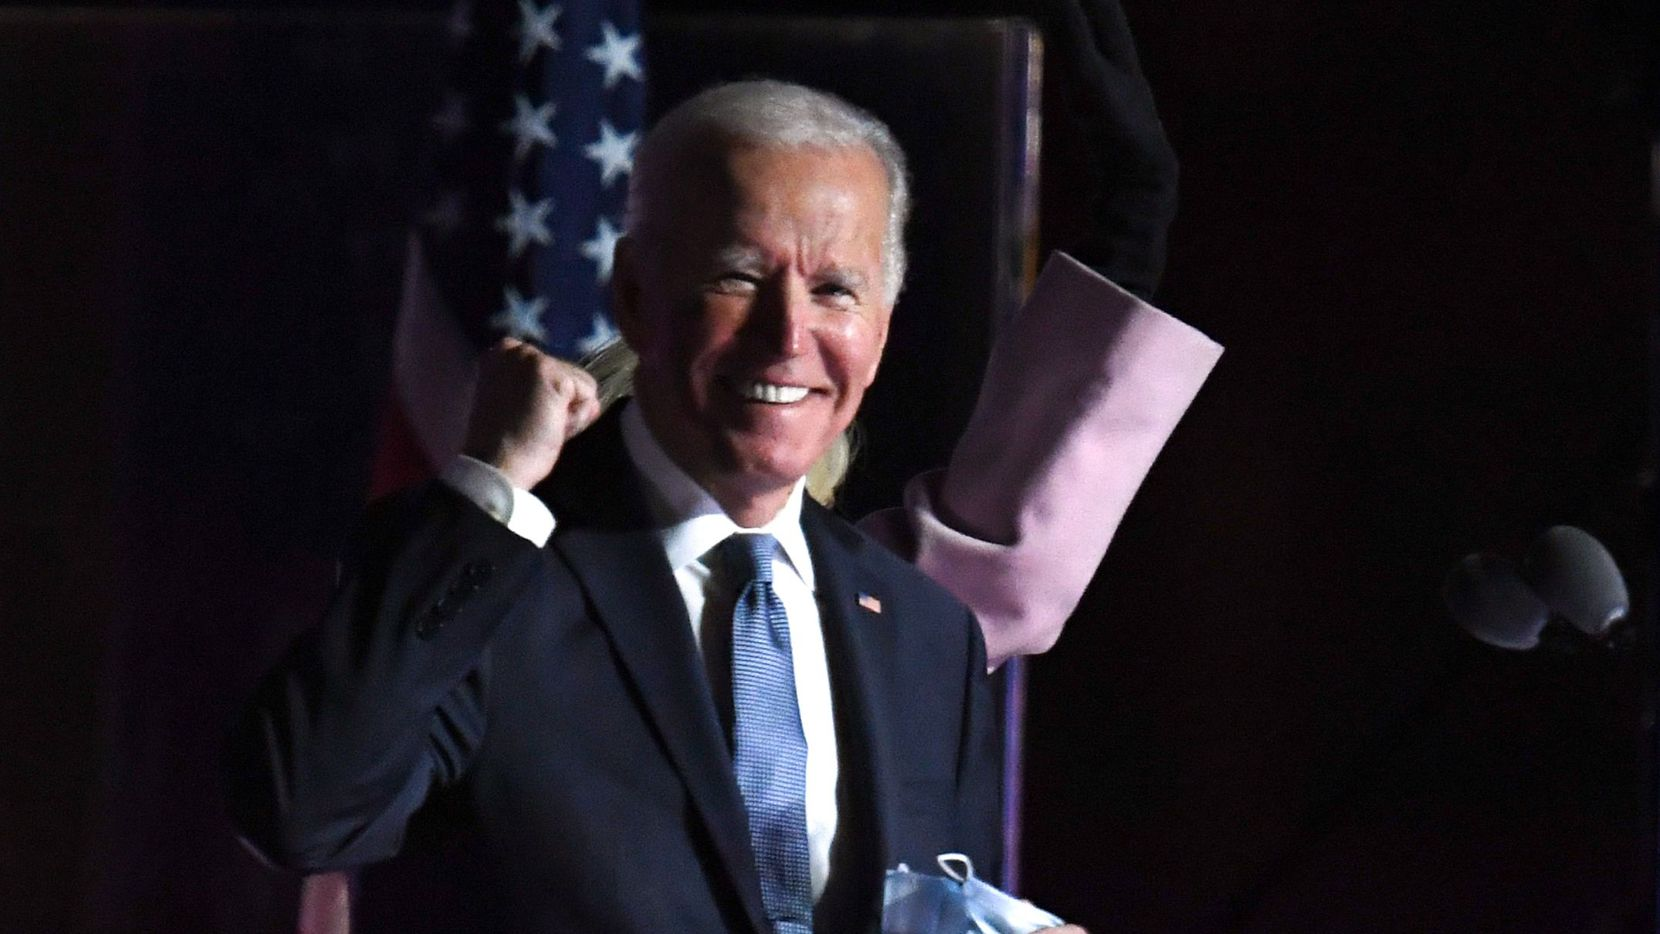 Democratic presidential nominee Joe Biden gestures as he arrives onstage to address supporters on election night at the Chase Center in Wilmington, Del., early on November 4, 2020.